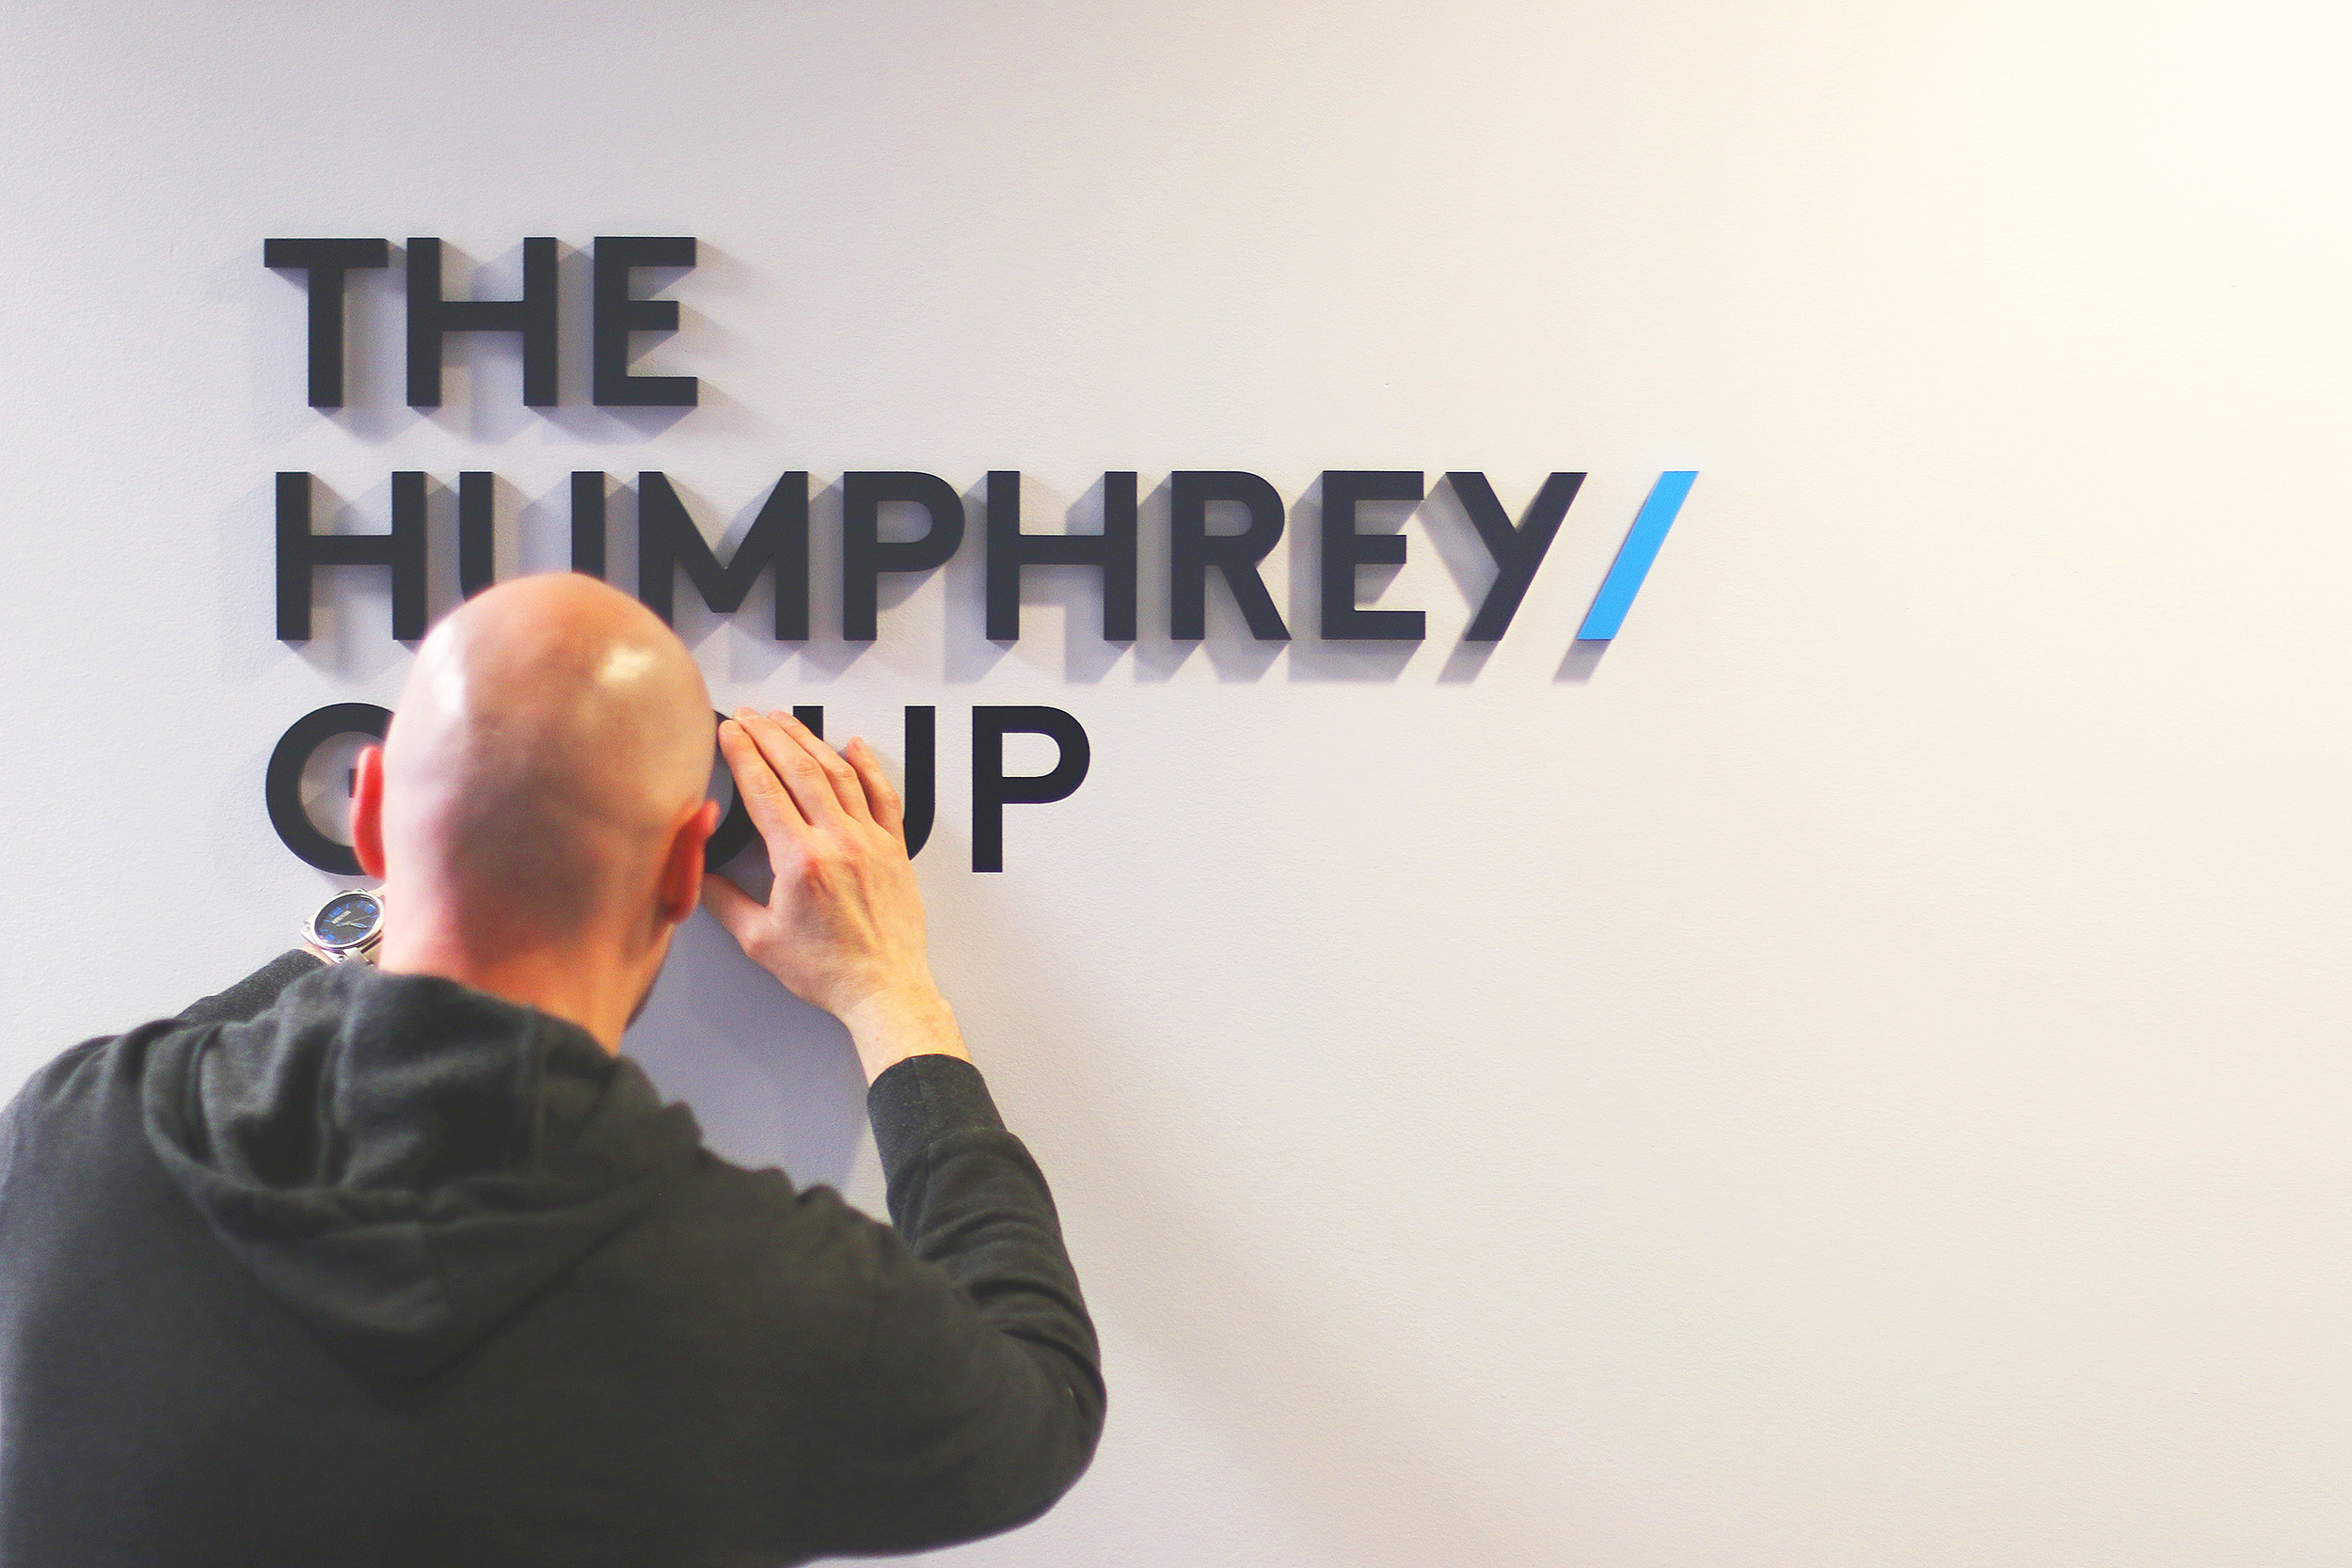 OUR VANCOUVER OFFICE SIGN GETS UPDATED.